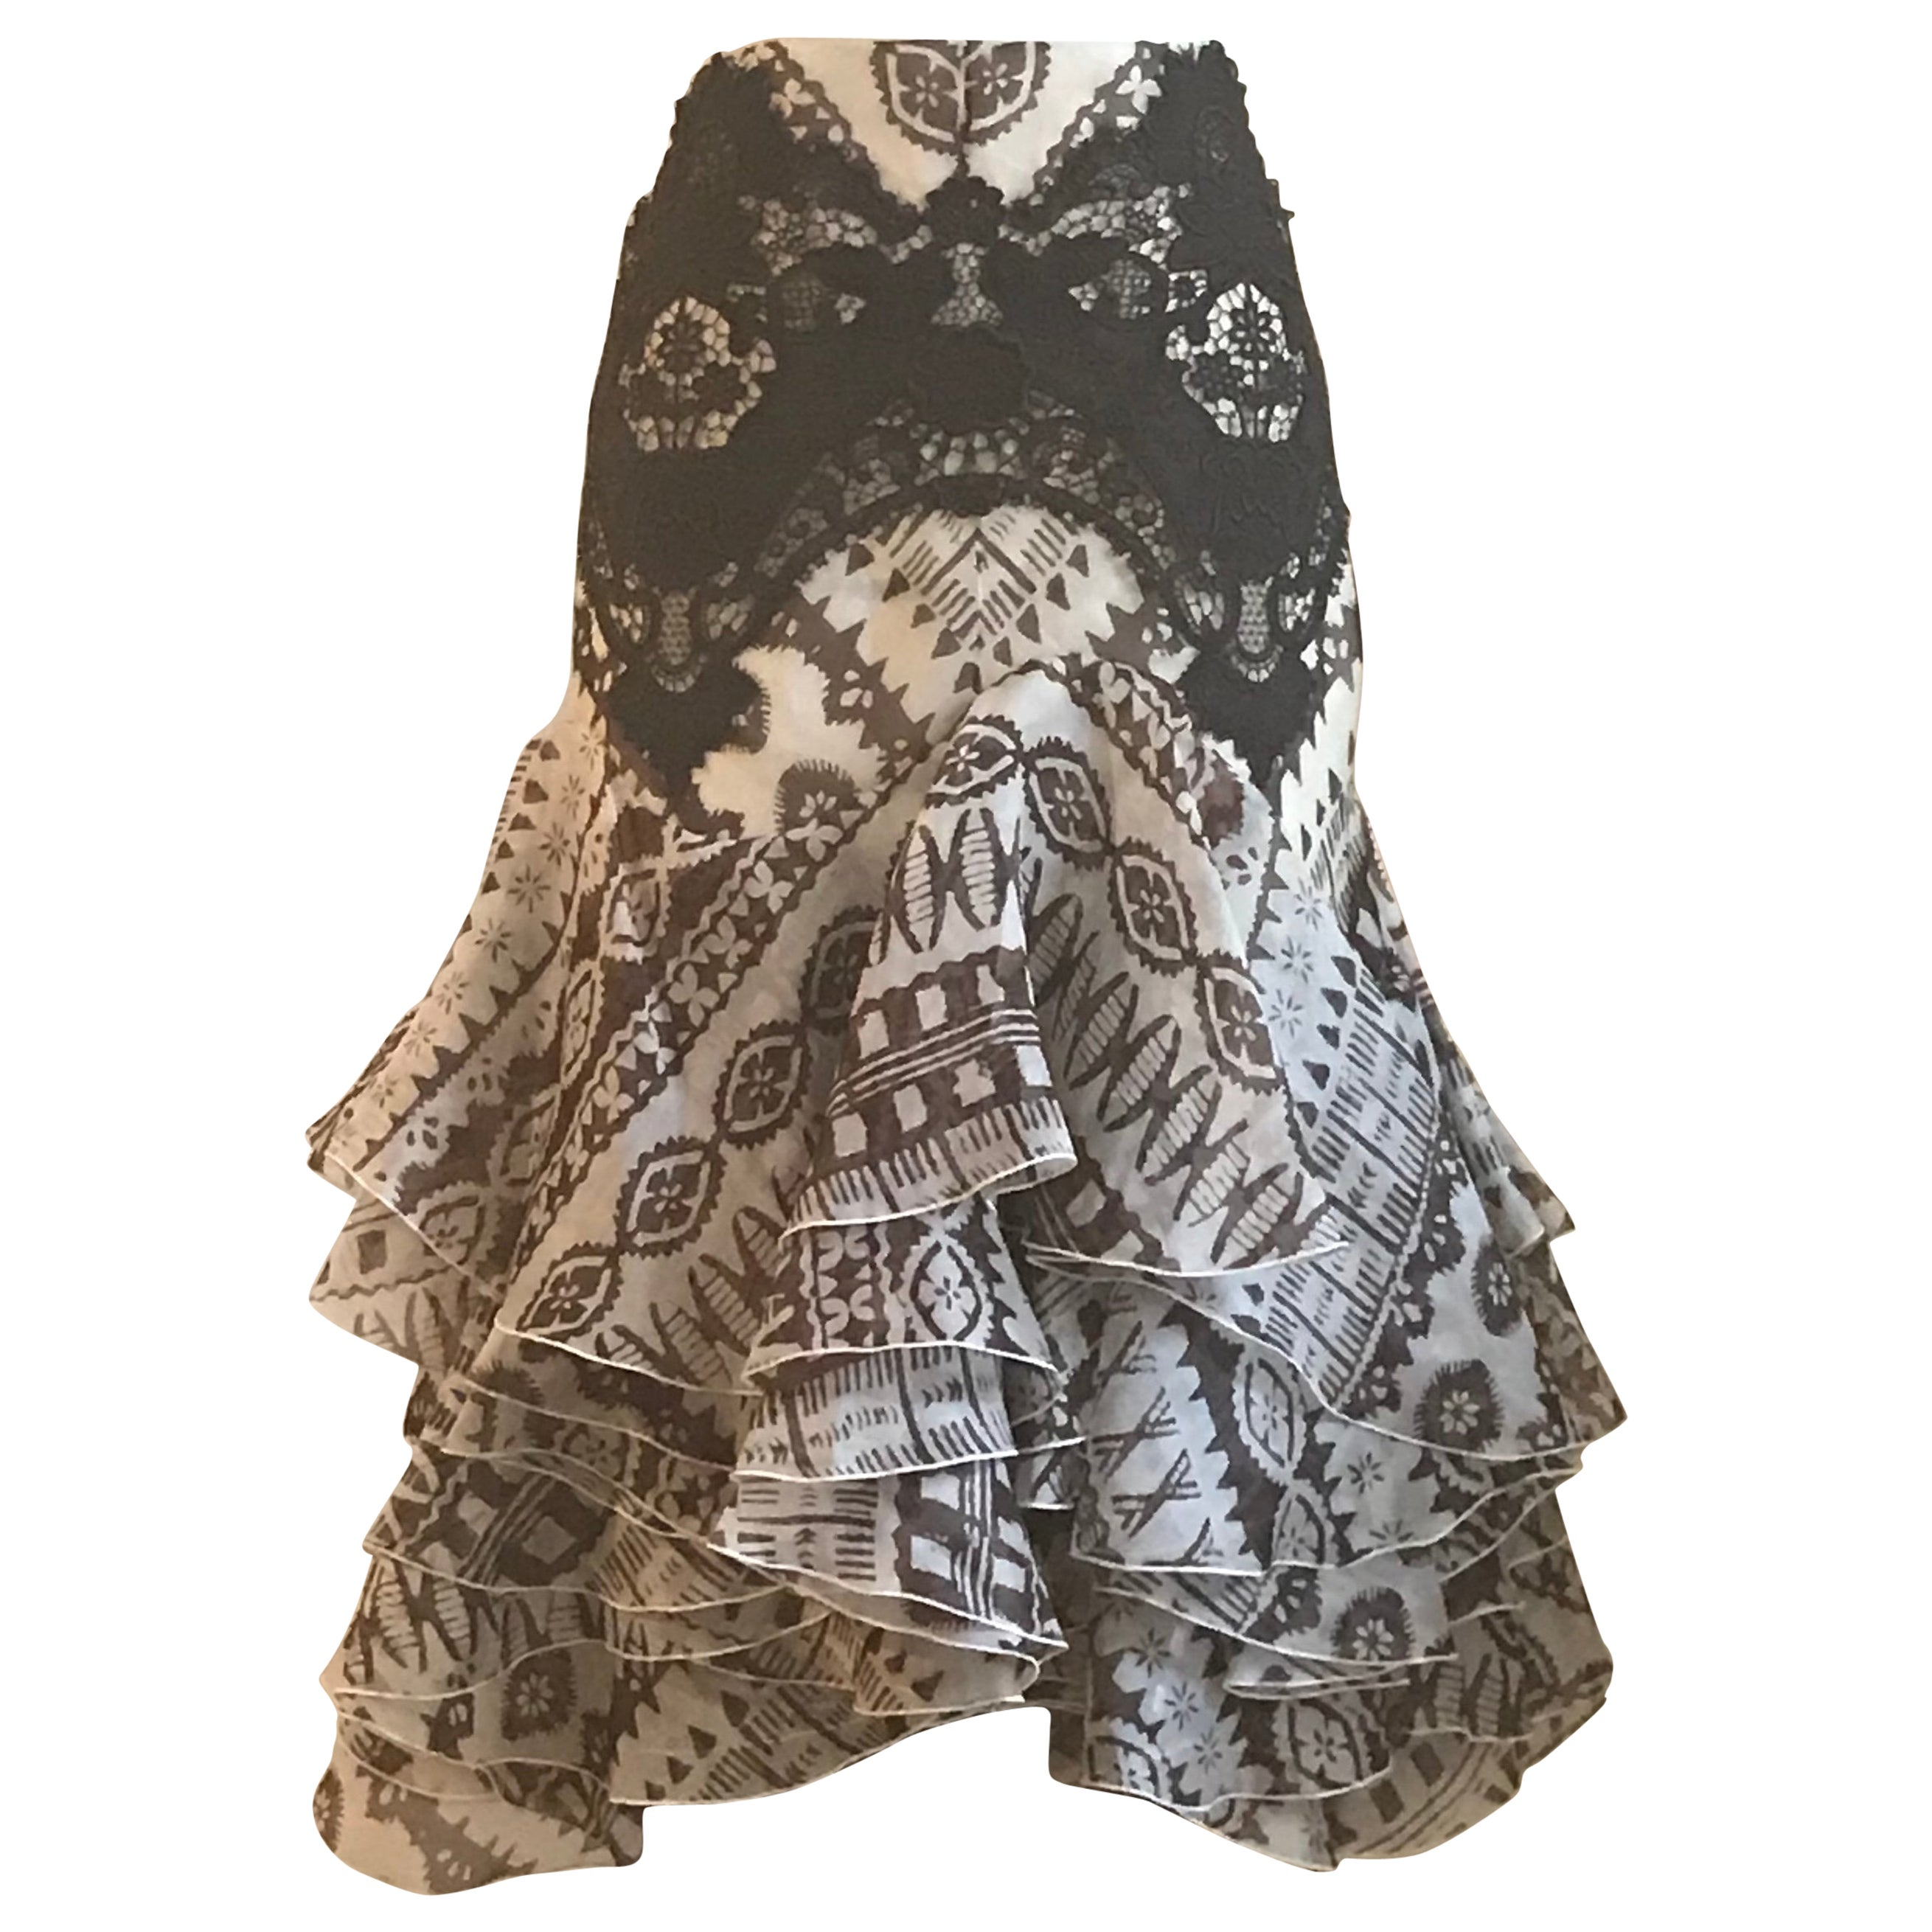 80d97cedc Alexander McQueen Brown and Cream Lace Trimmed Ruffle Skirt at 1stdibs